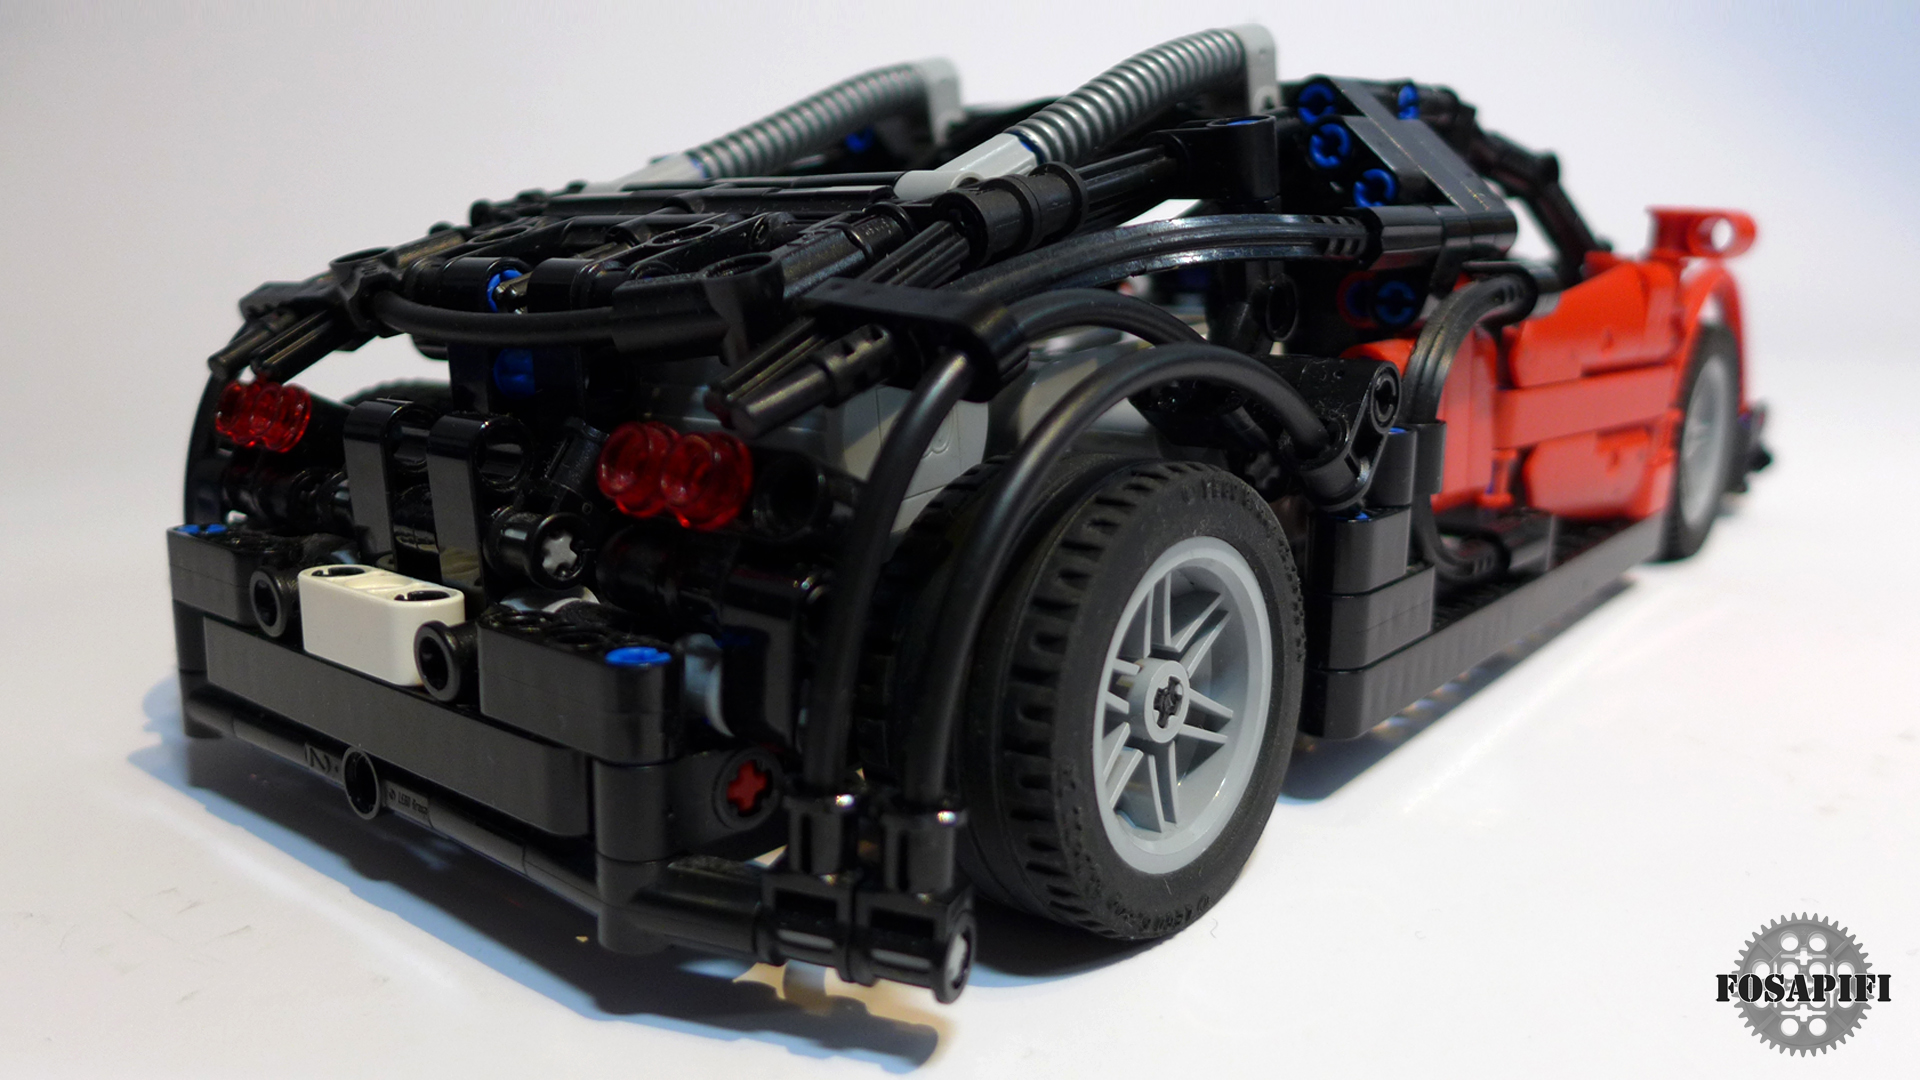 lego technic creations by fosapifi bugatti veyron 16 4 moc. Black Bedroom Furniture Sets. Home Design Ideas